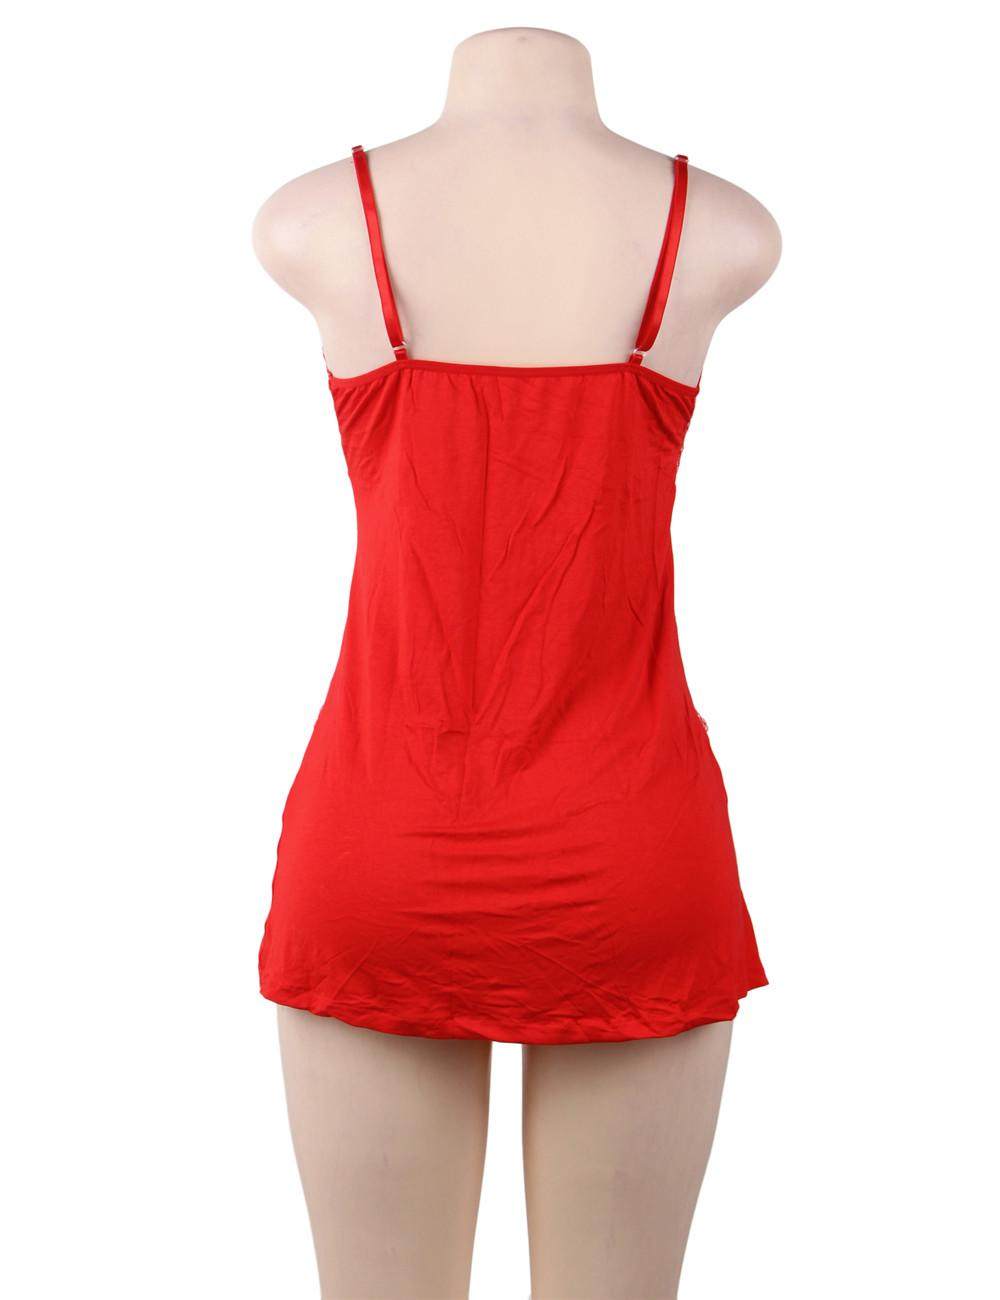 Red Victoria Babydoll rear view